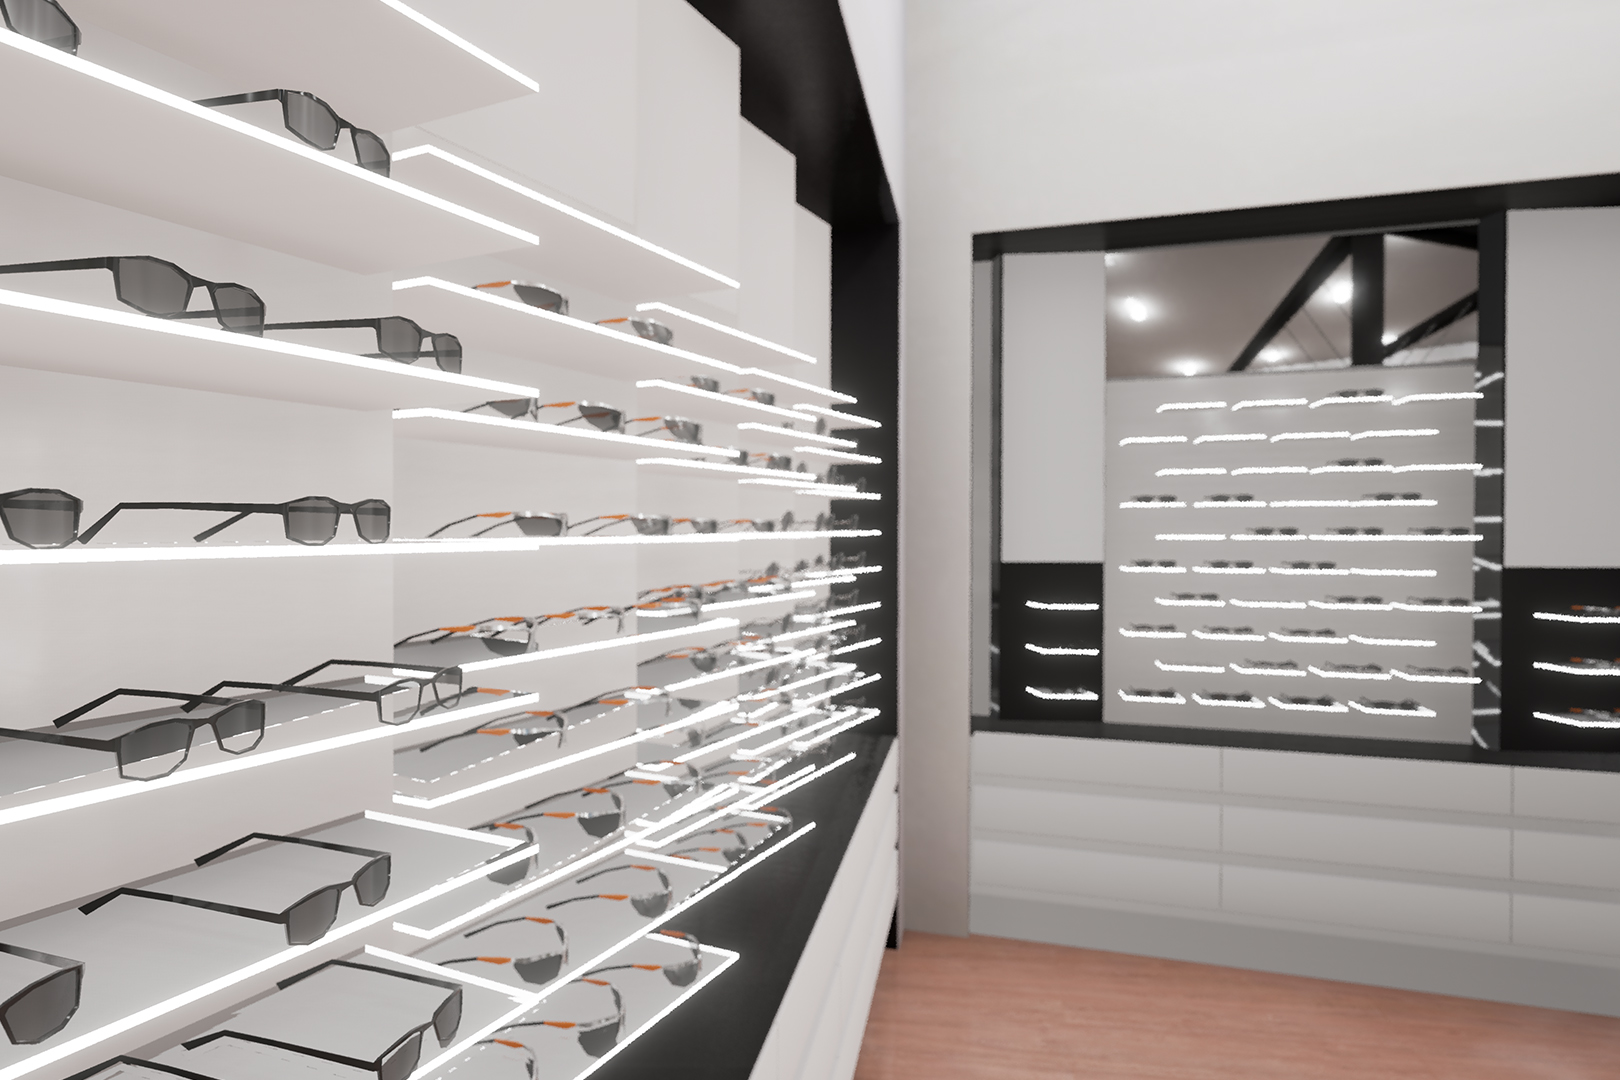 5th and sunset VR walkthrough screenshot, luxury sunglass display